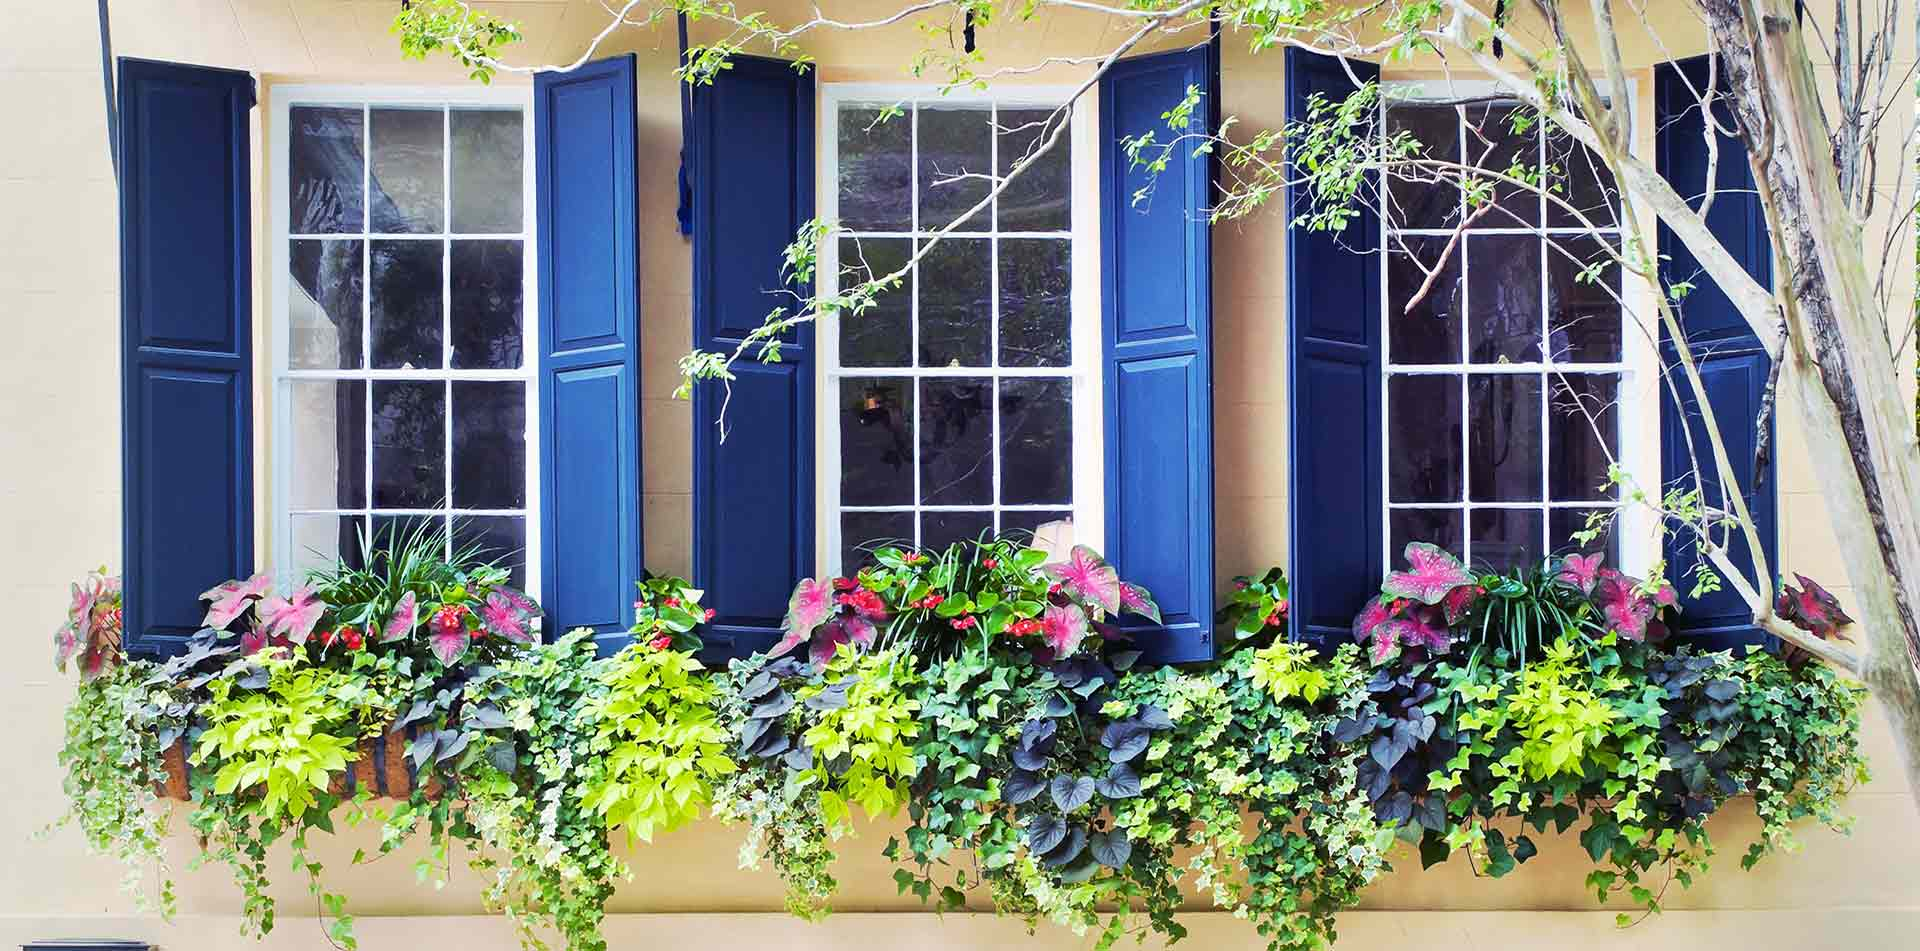 North America United States South Carolina Charleston colorful shutters window boxes flowers - luxury vacation destinations